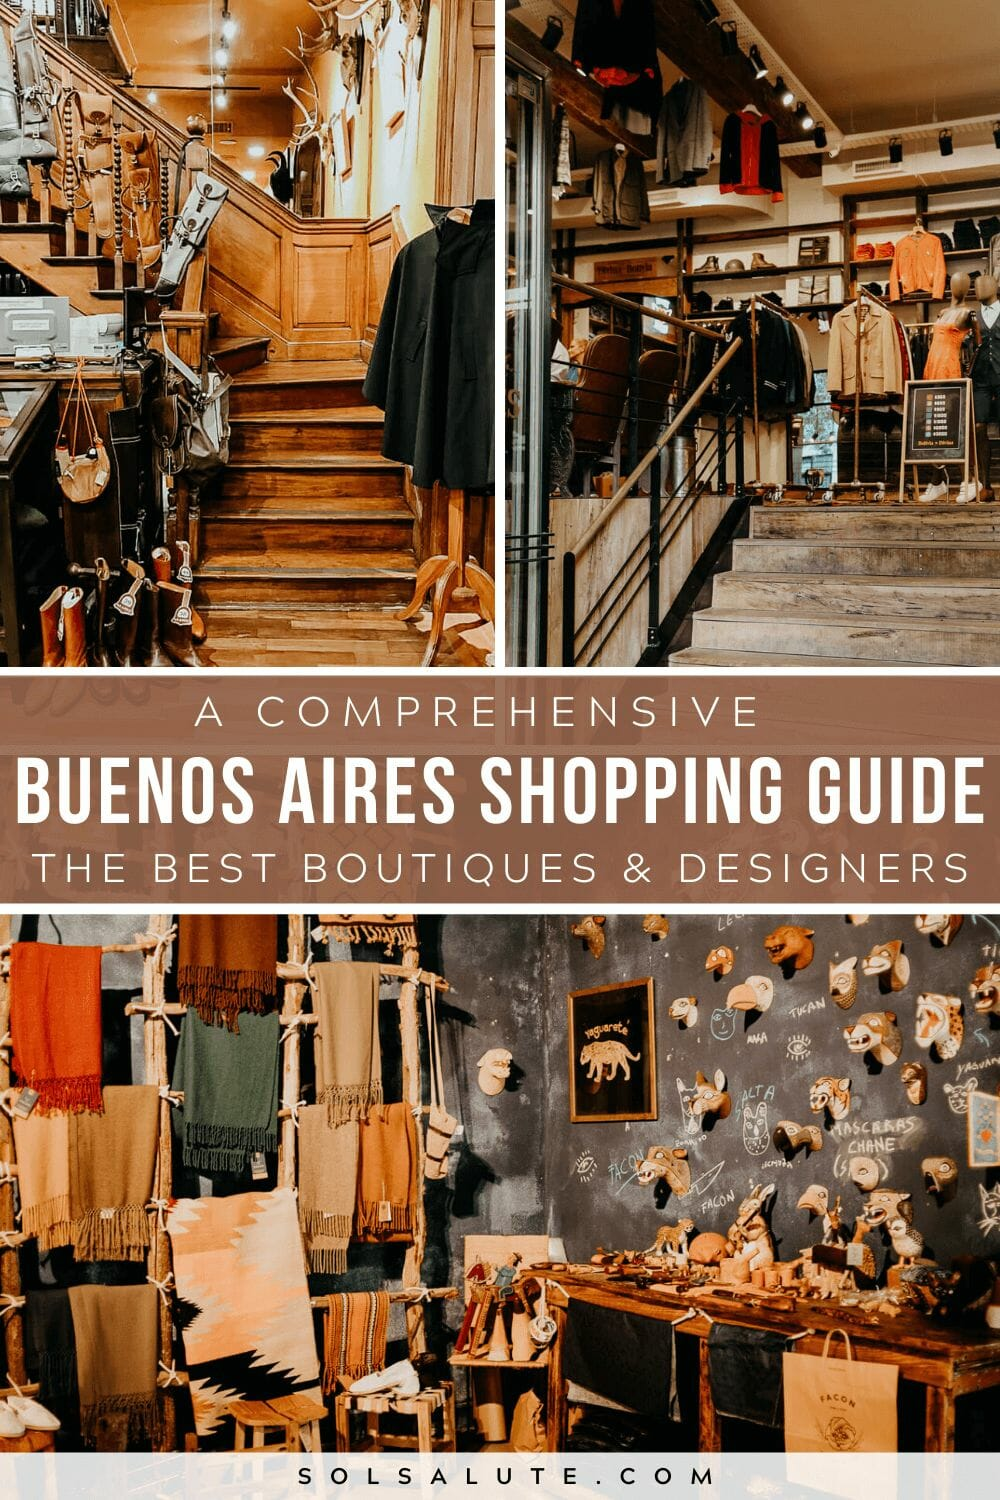 A complete guide to Shopping in Buenos Aires Argentina | Shopping Buenos Aires | Where to Shop in Buenos Aires | Buenos Aires shopping guide | Best Buenos Aires shopping districts | Where to get leather in Buenos Aires | Shopping in Argentina | Palermo Soho shopping | Where to shop in recoleta | Best bookstores in Buenos Aires | Buenos Aires shopping malls | What to buy in Buenos Aires | Argentina shopping guide | Things to do in Buenos Aires | Buenos Aires souvenirs #BuenosAires #Argentina